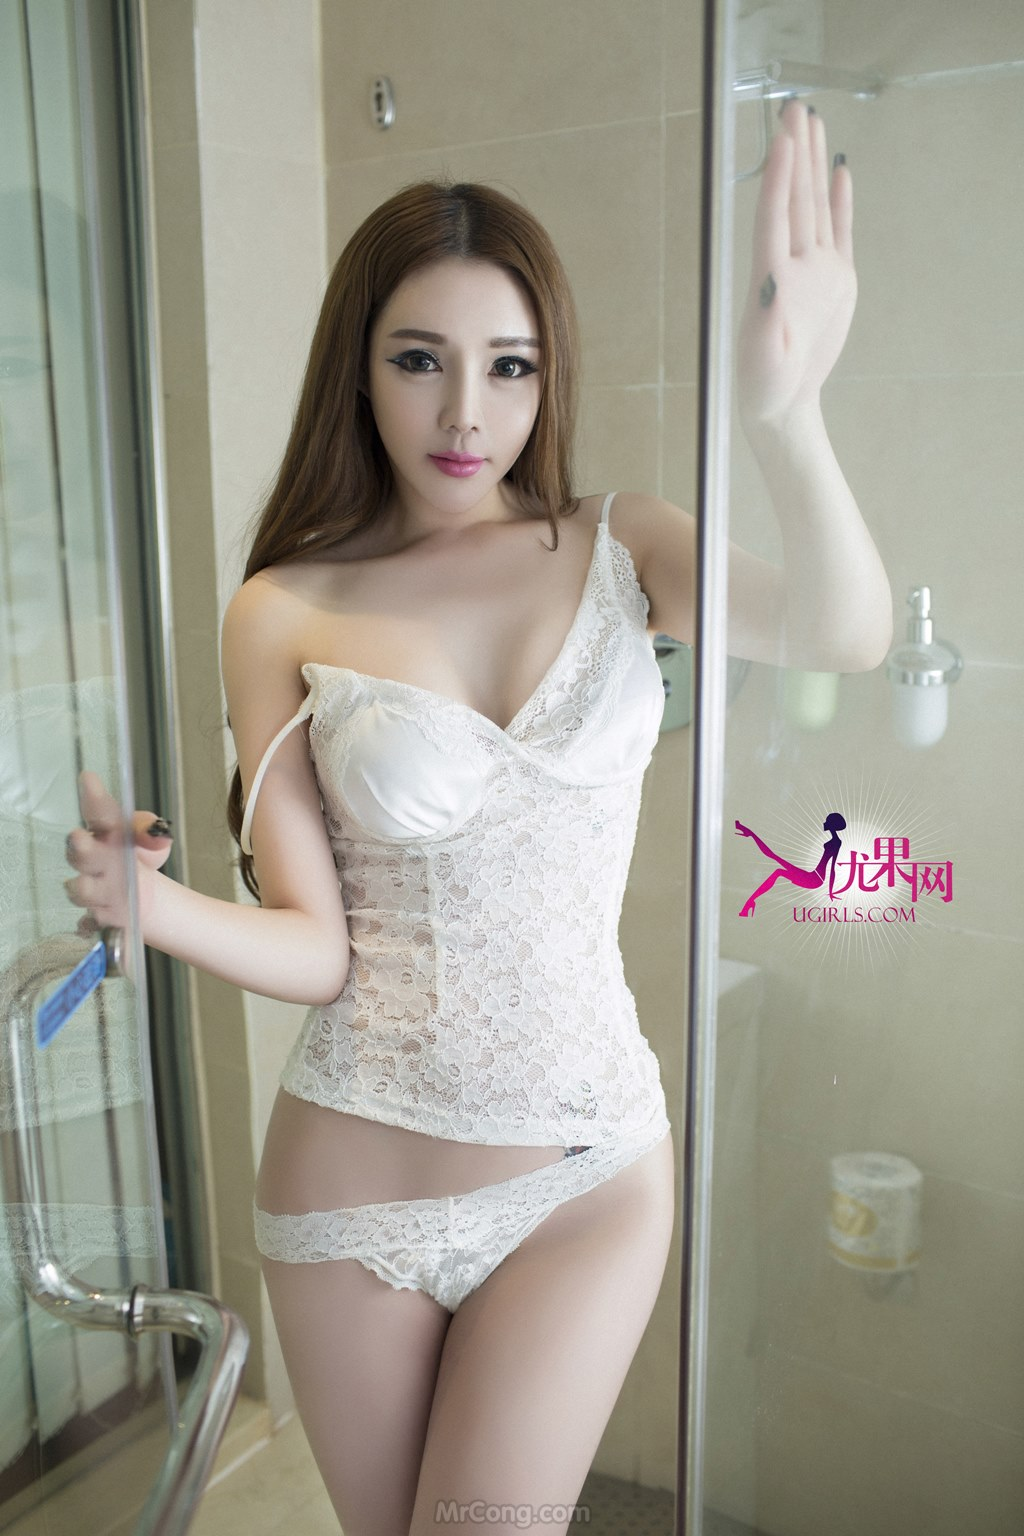 Beauty Lin Fei Yuan (林妃媛) hot body khoe in collection UGIRLS 061